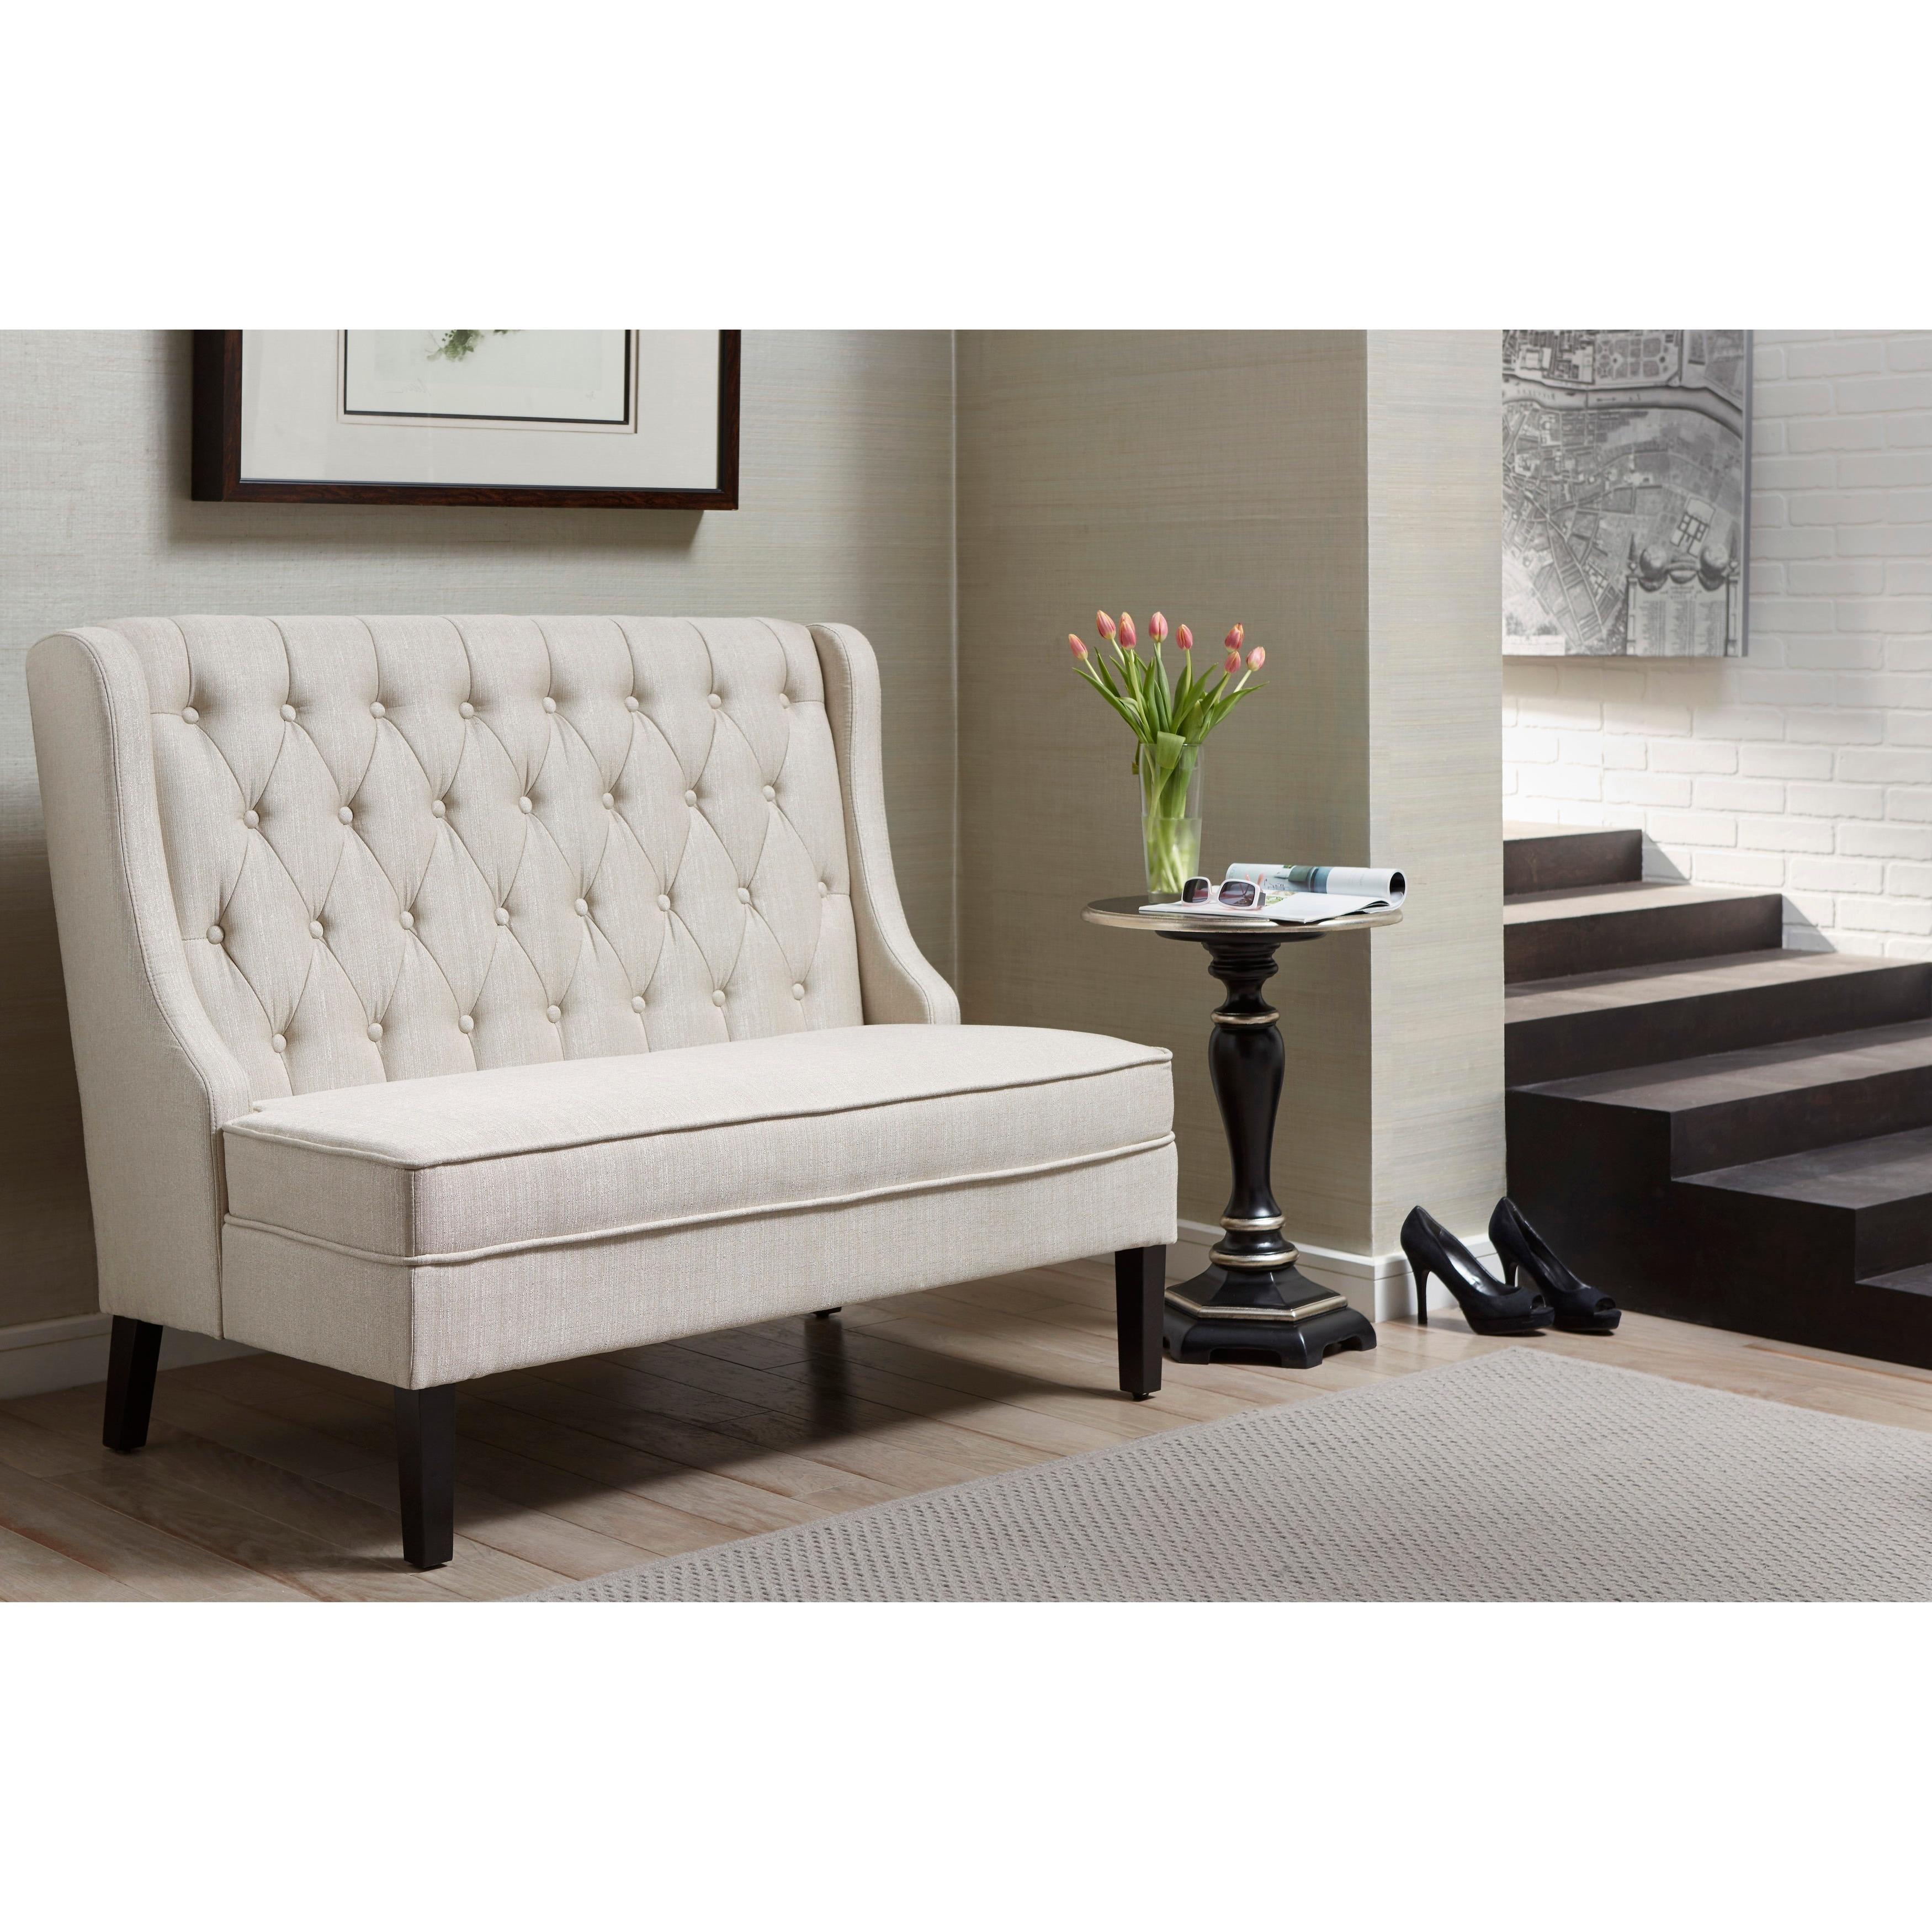 free today home settee tufted legs acrylic living shipping overstock simple leona with bench garden velvet product button